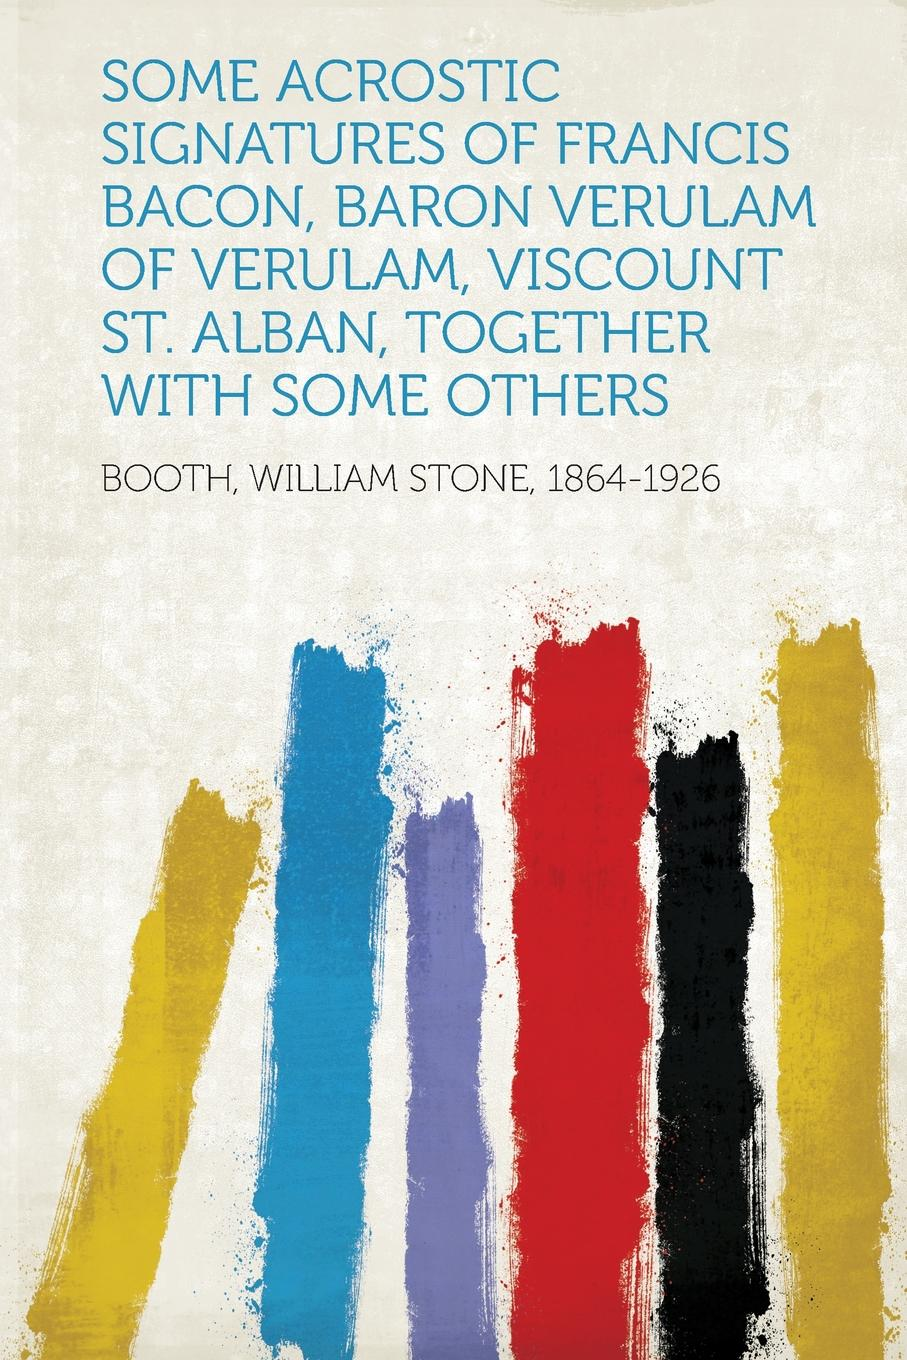 Booth William Stone 1864-1926 Some Acrostic Signatures of Francis Bacon, Baron Verulam of Verulam, Viscount St. Alban, Together With Some Others w stone booth some acrostic signatures of francis bacon baron verulam of verulam viscount st alban together with some others